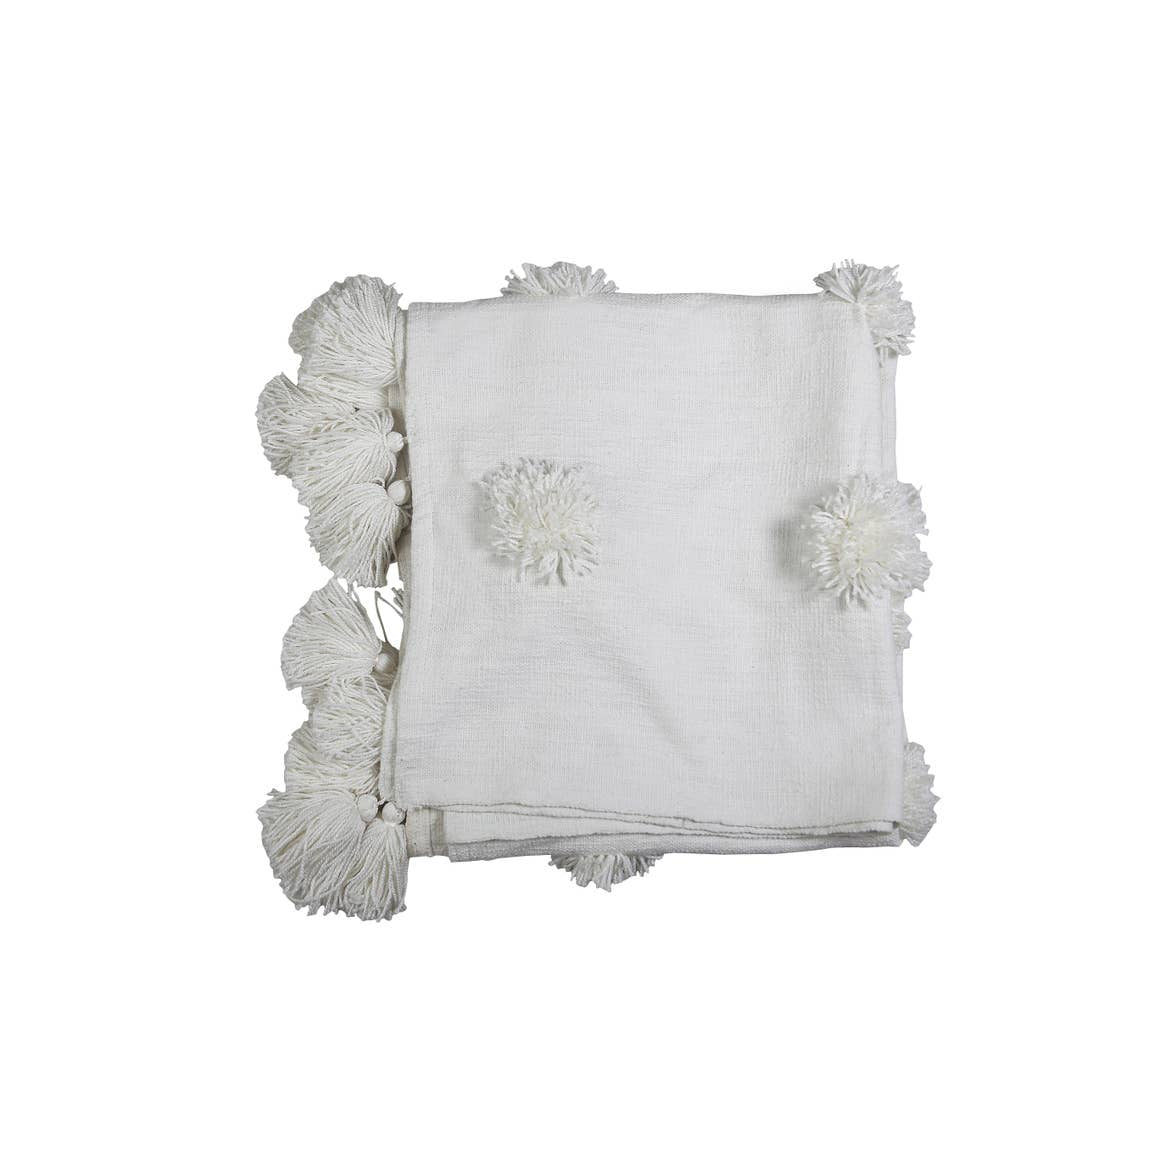 "Snow Flake Throw | White | 50""x 60"""